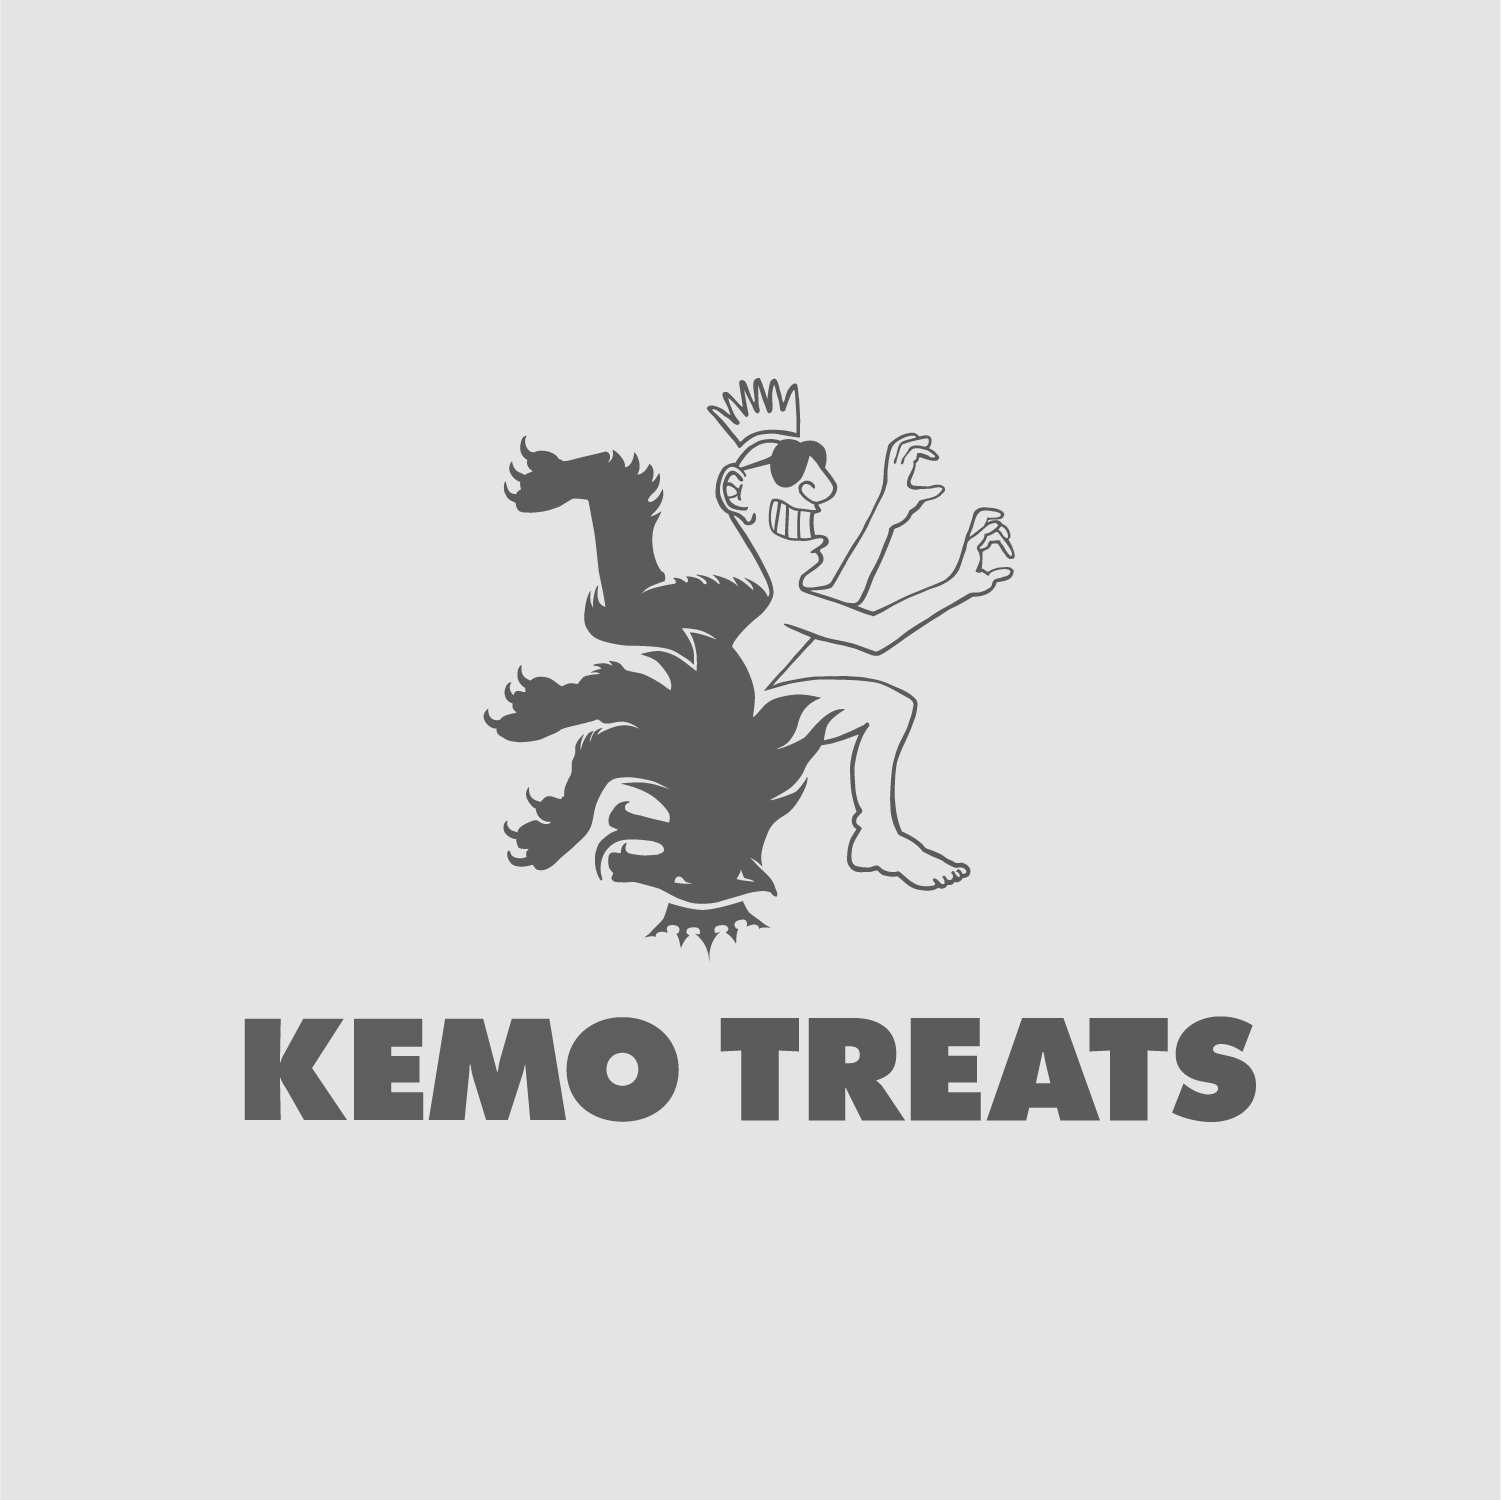 Simeon-Goa_Victoria-Canada_Graphic-Design_Illustration_Logos_Kemo-Treats.jpg